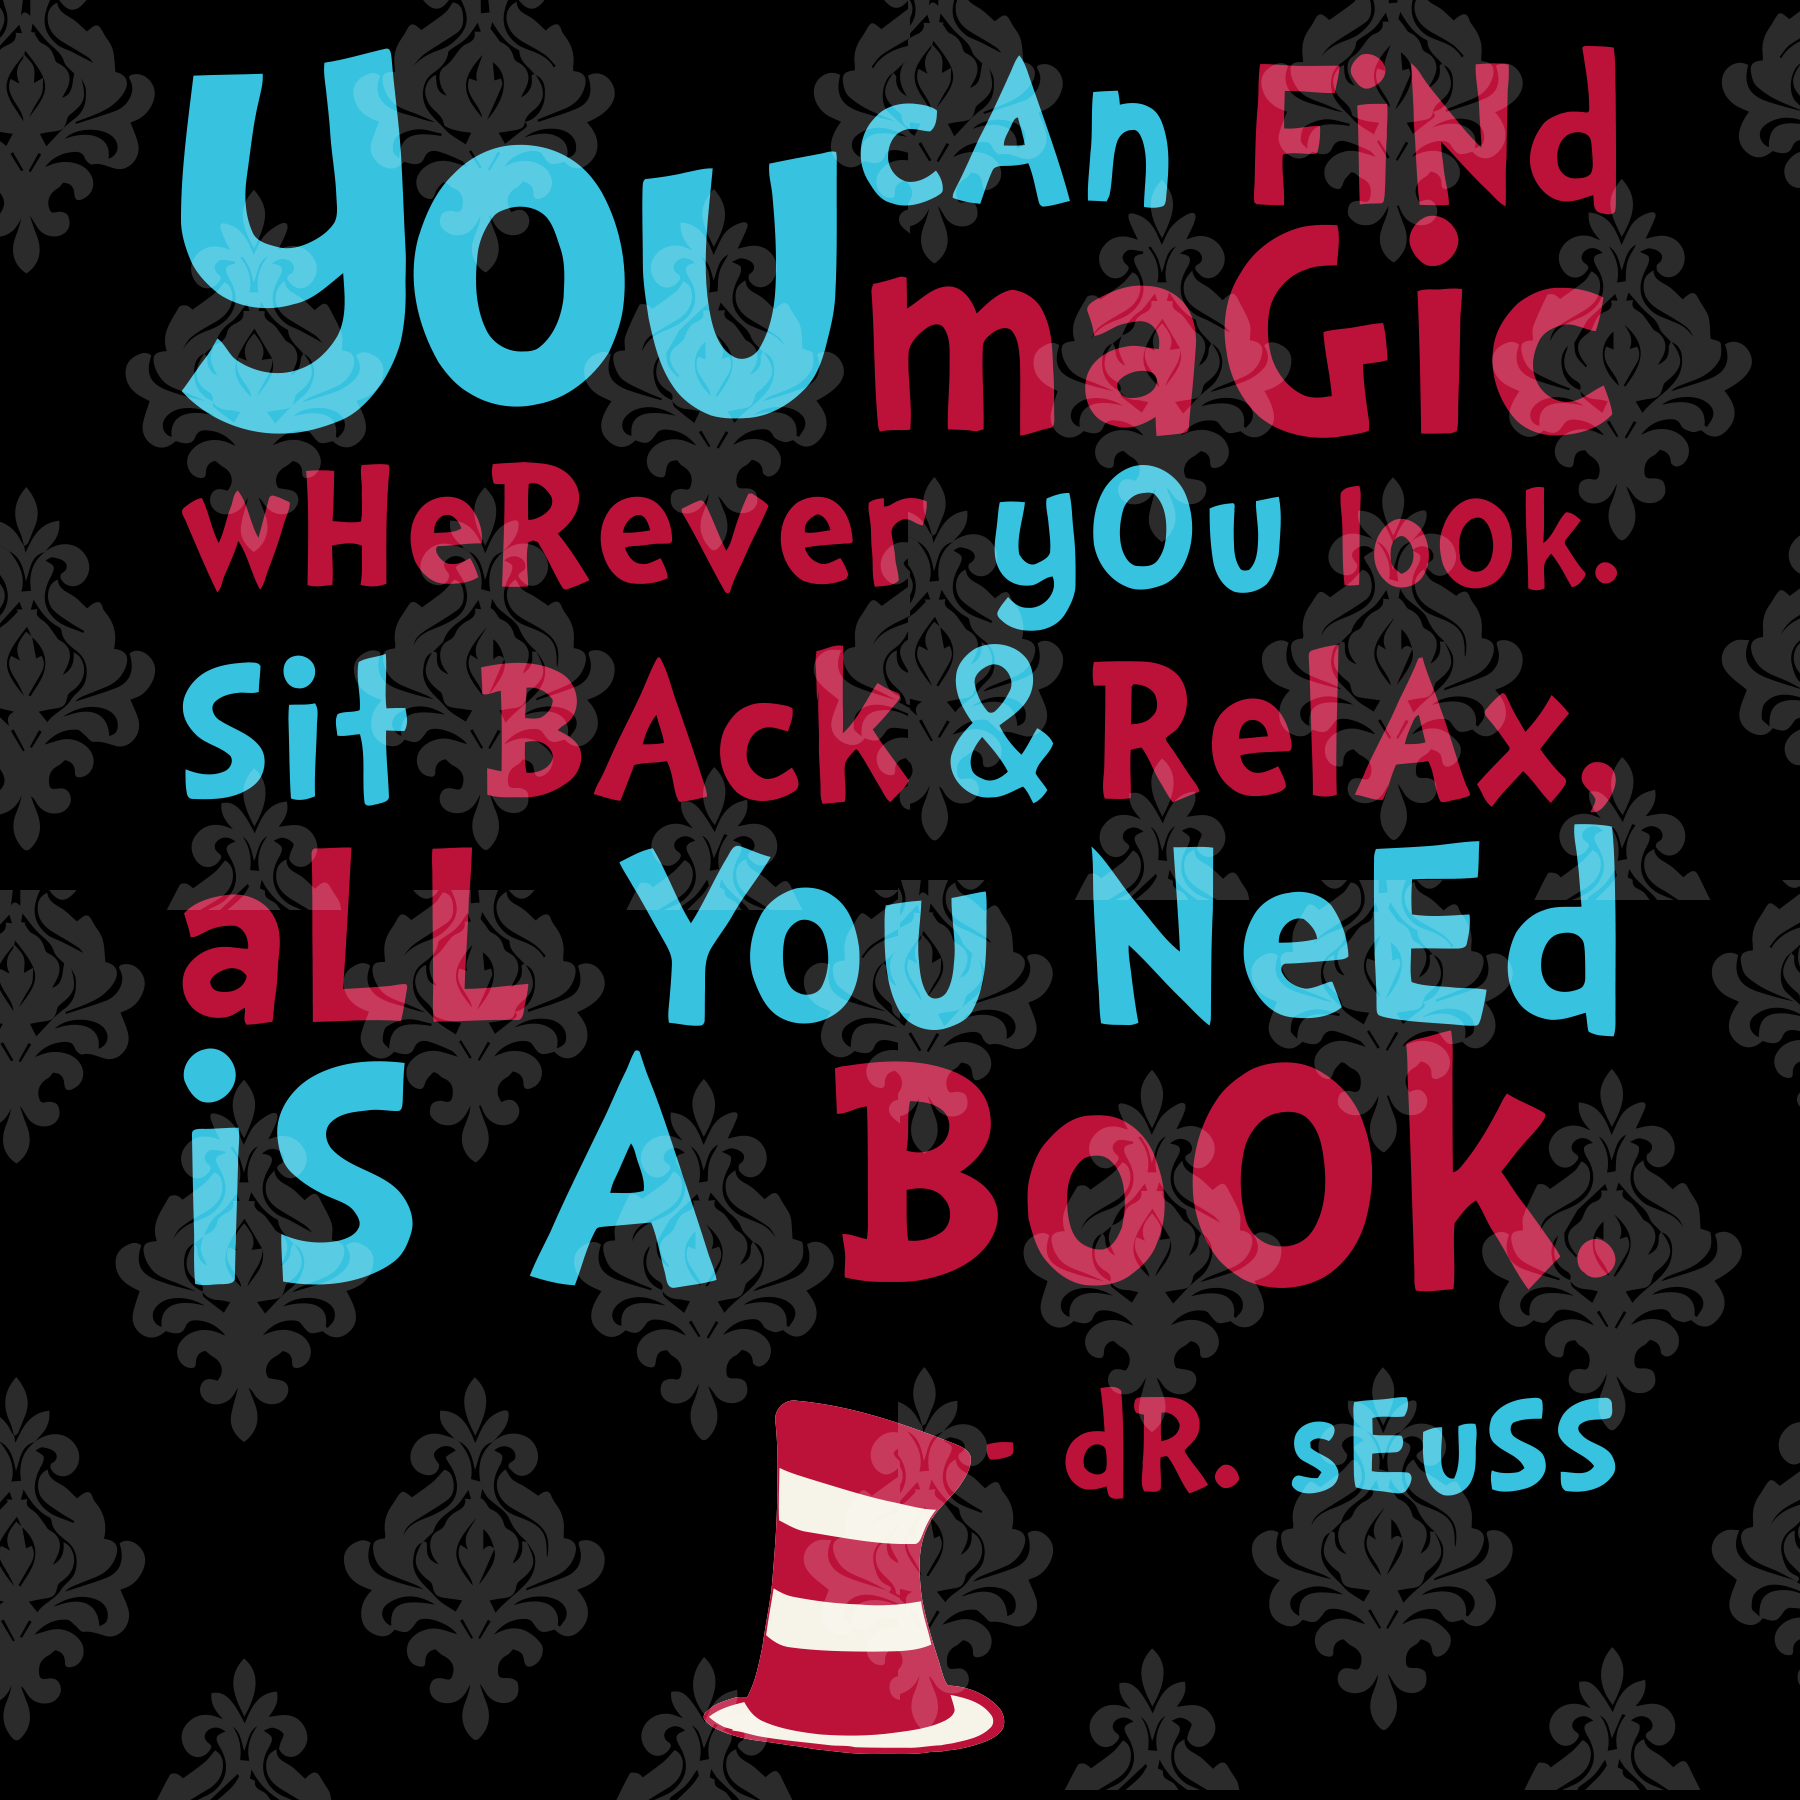 You can find magic wherever you look. Sit back & relax, all you need is a book. - Dr. Seuss , dr seuss quotes, SVG Files, SVG Files For Cricut, Digital Files.